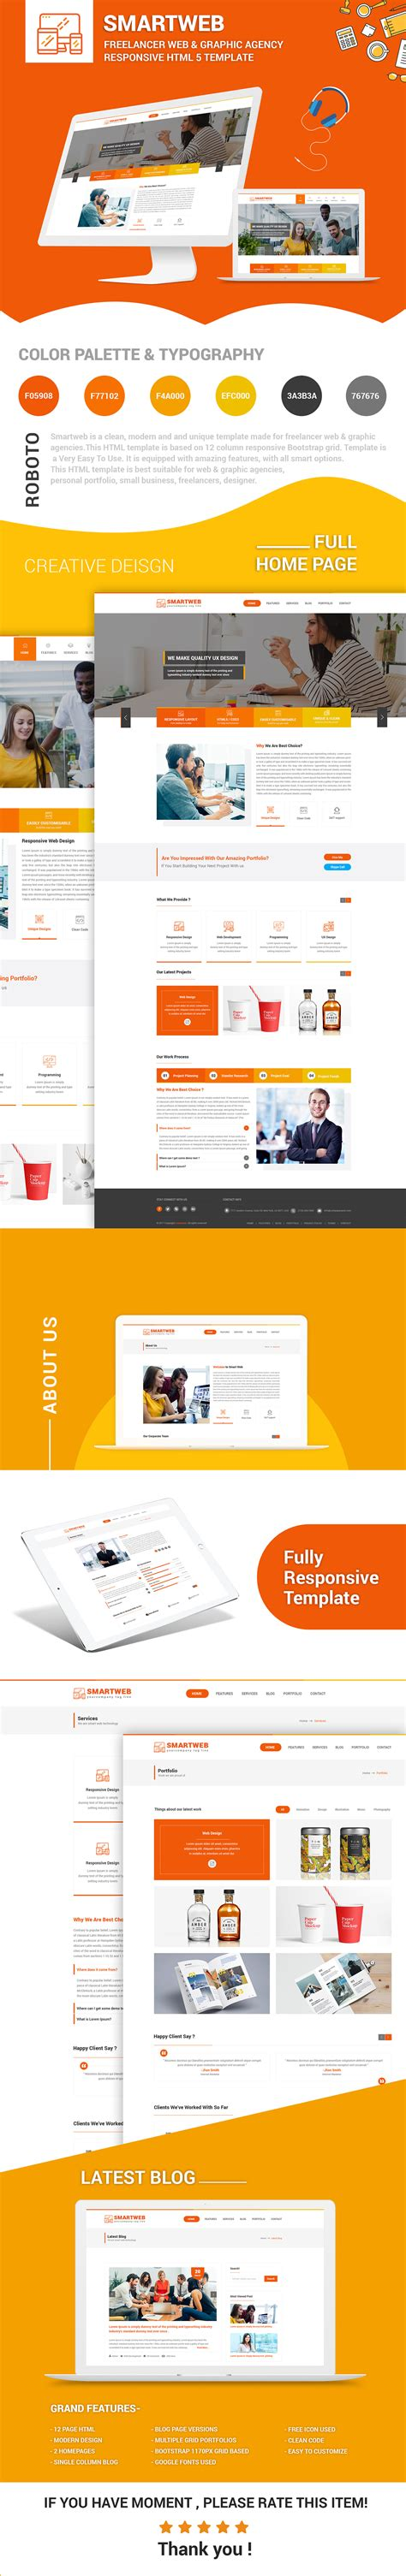 Smartweb Freelancer Web Graphic Agency Html Template By Createuiux Website Template Like Freelancer